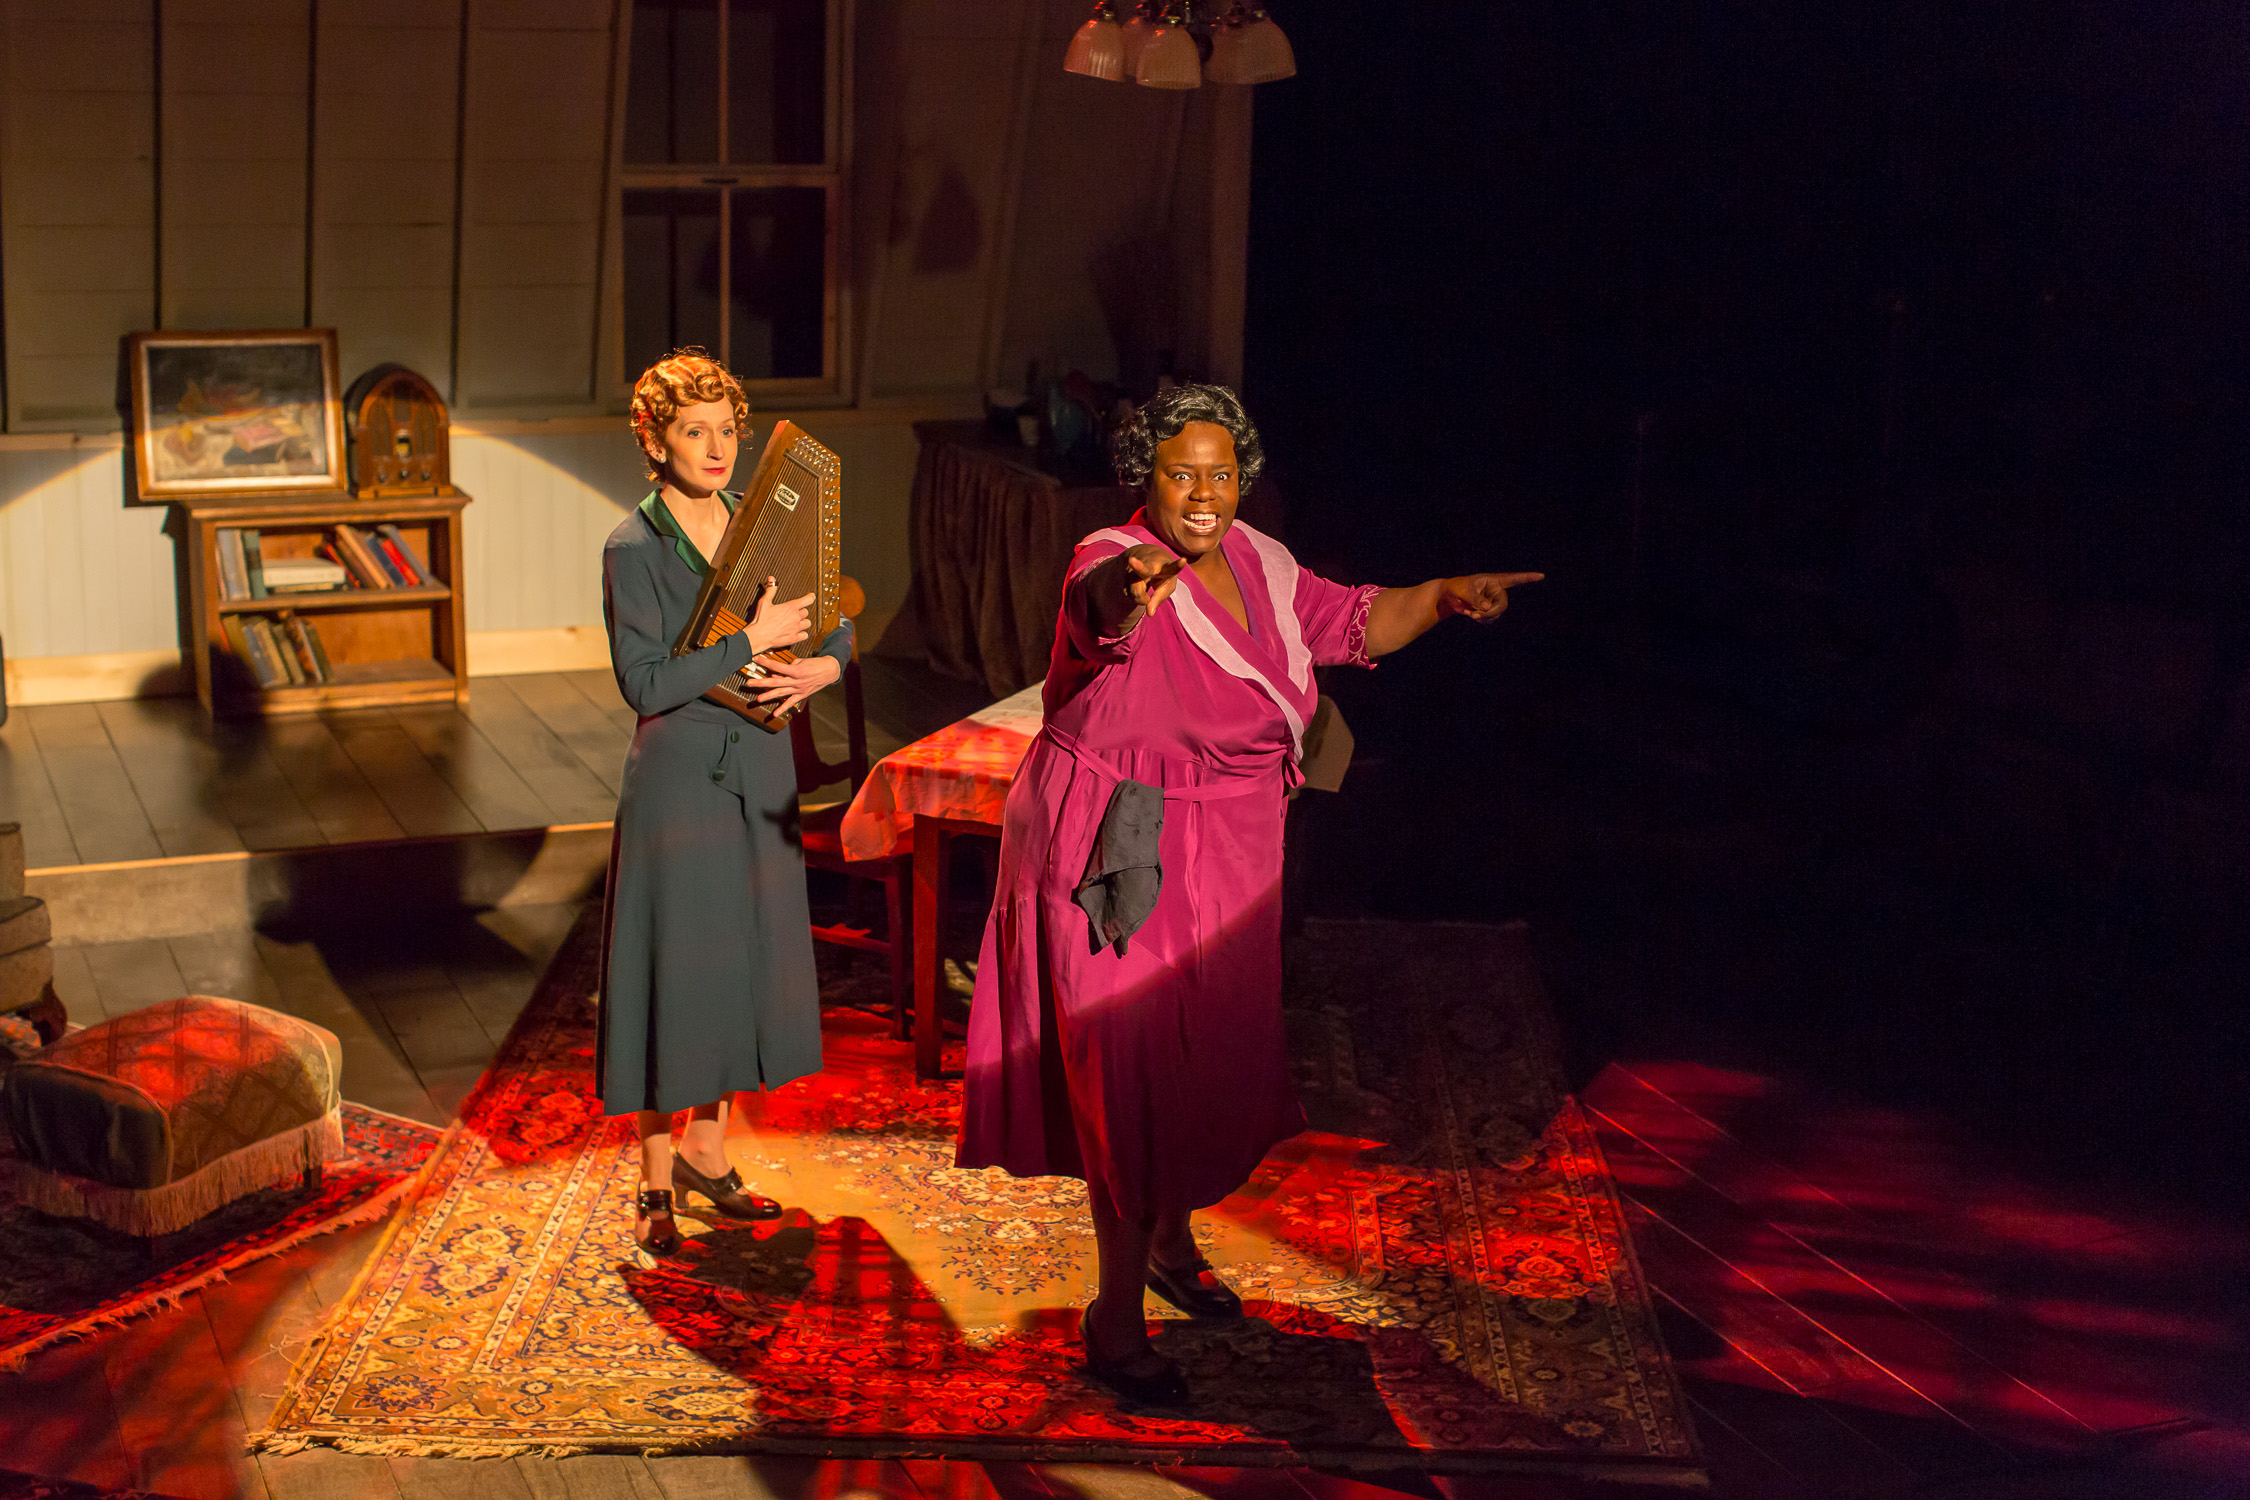 Emily Dorsch and Lisa Gaye Dixon in the Kitchen Theatre production of Black Pearl Sings! by Frank Higgins. Photo by Dave Burbank